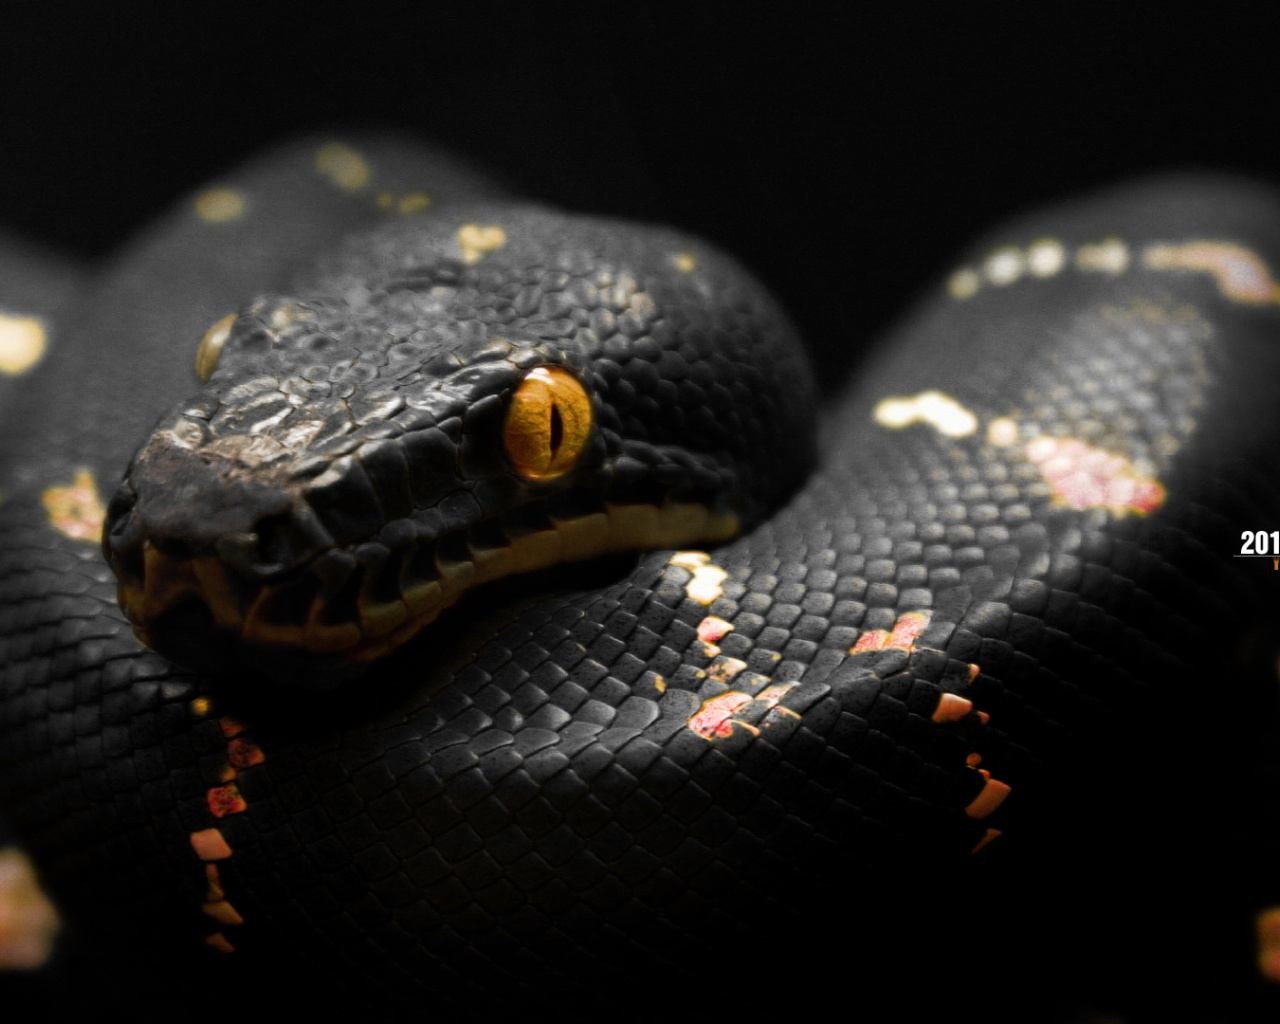 Snakes Hd Wallpapers Wallpaper202